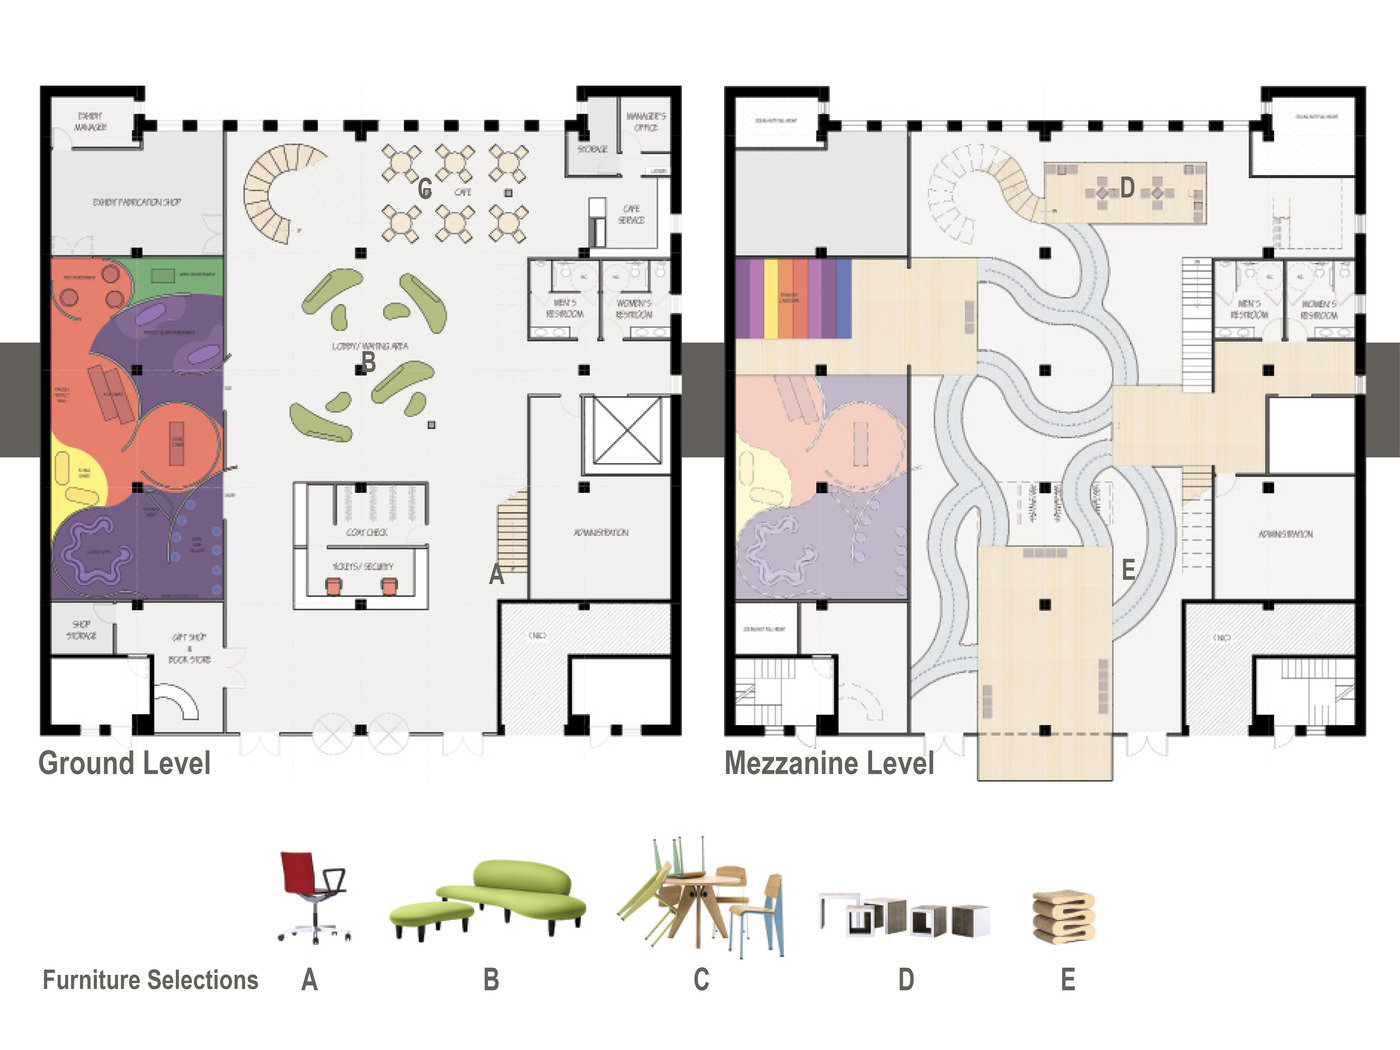 D Exhibition Floor Plan : Vitra design museum free play by amanda meininger at